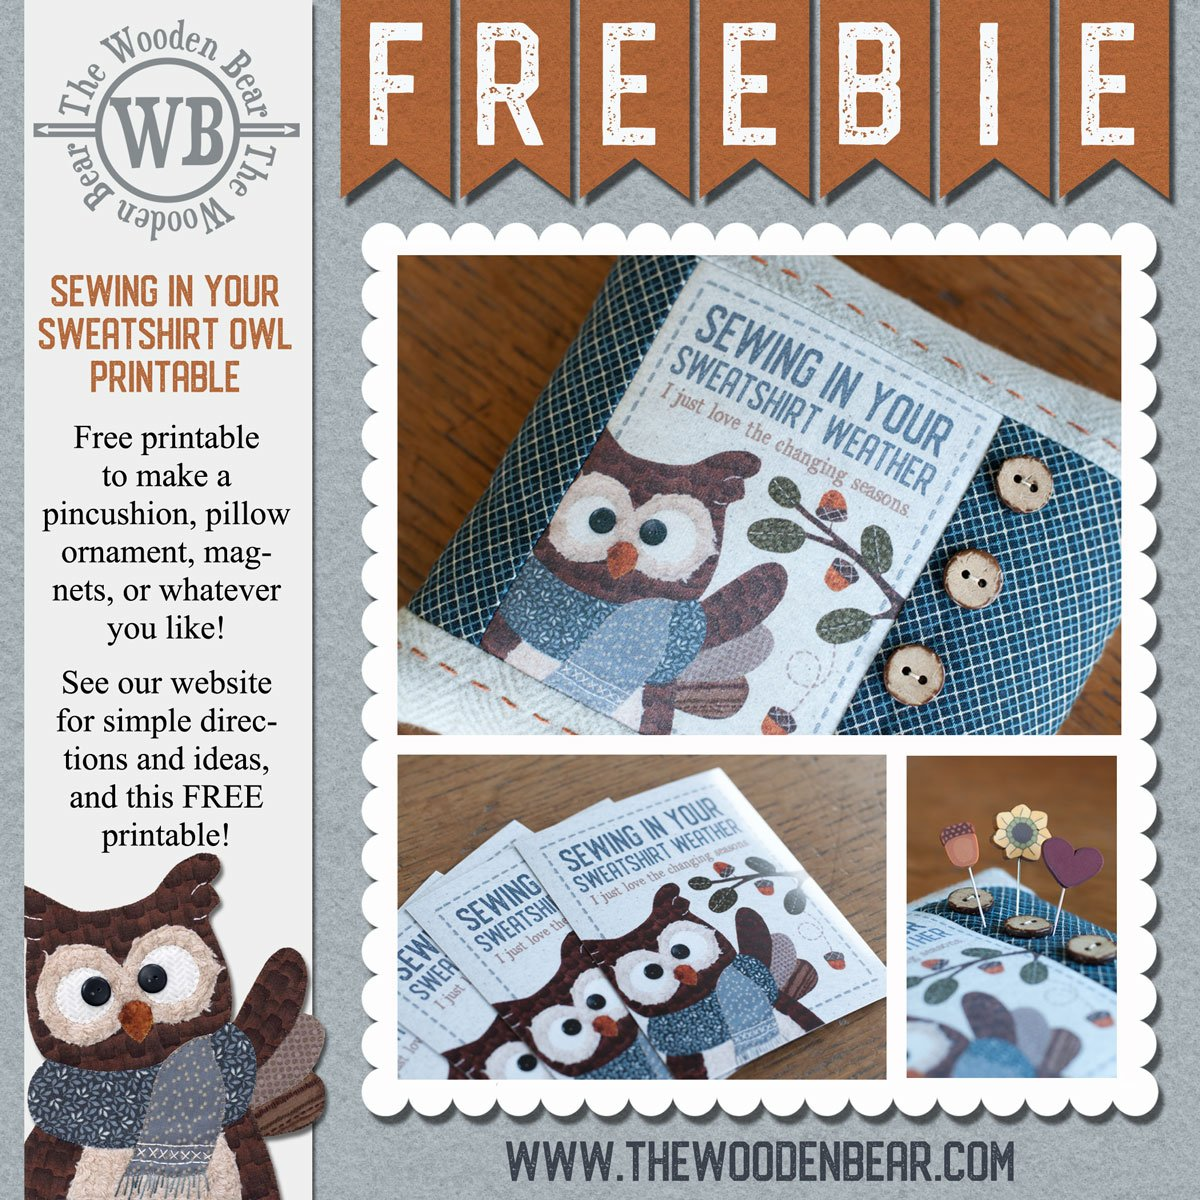 FREEBIE September Printable